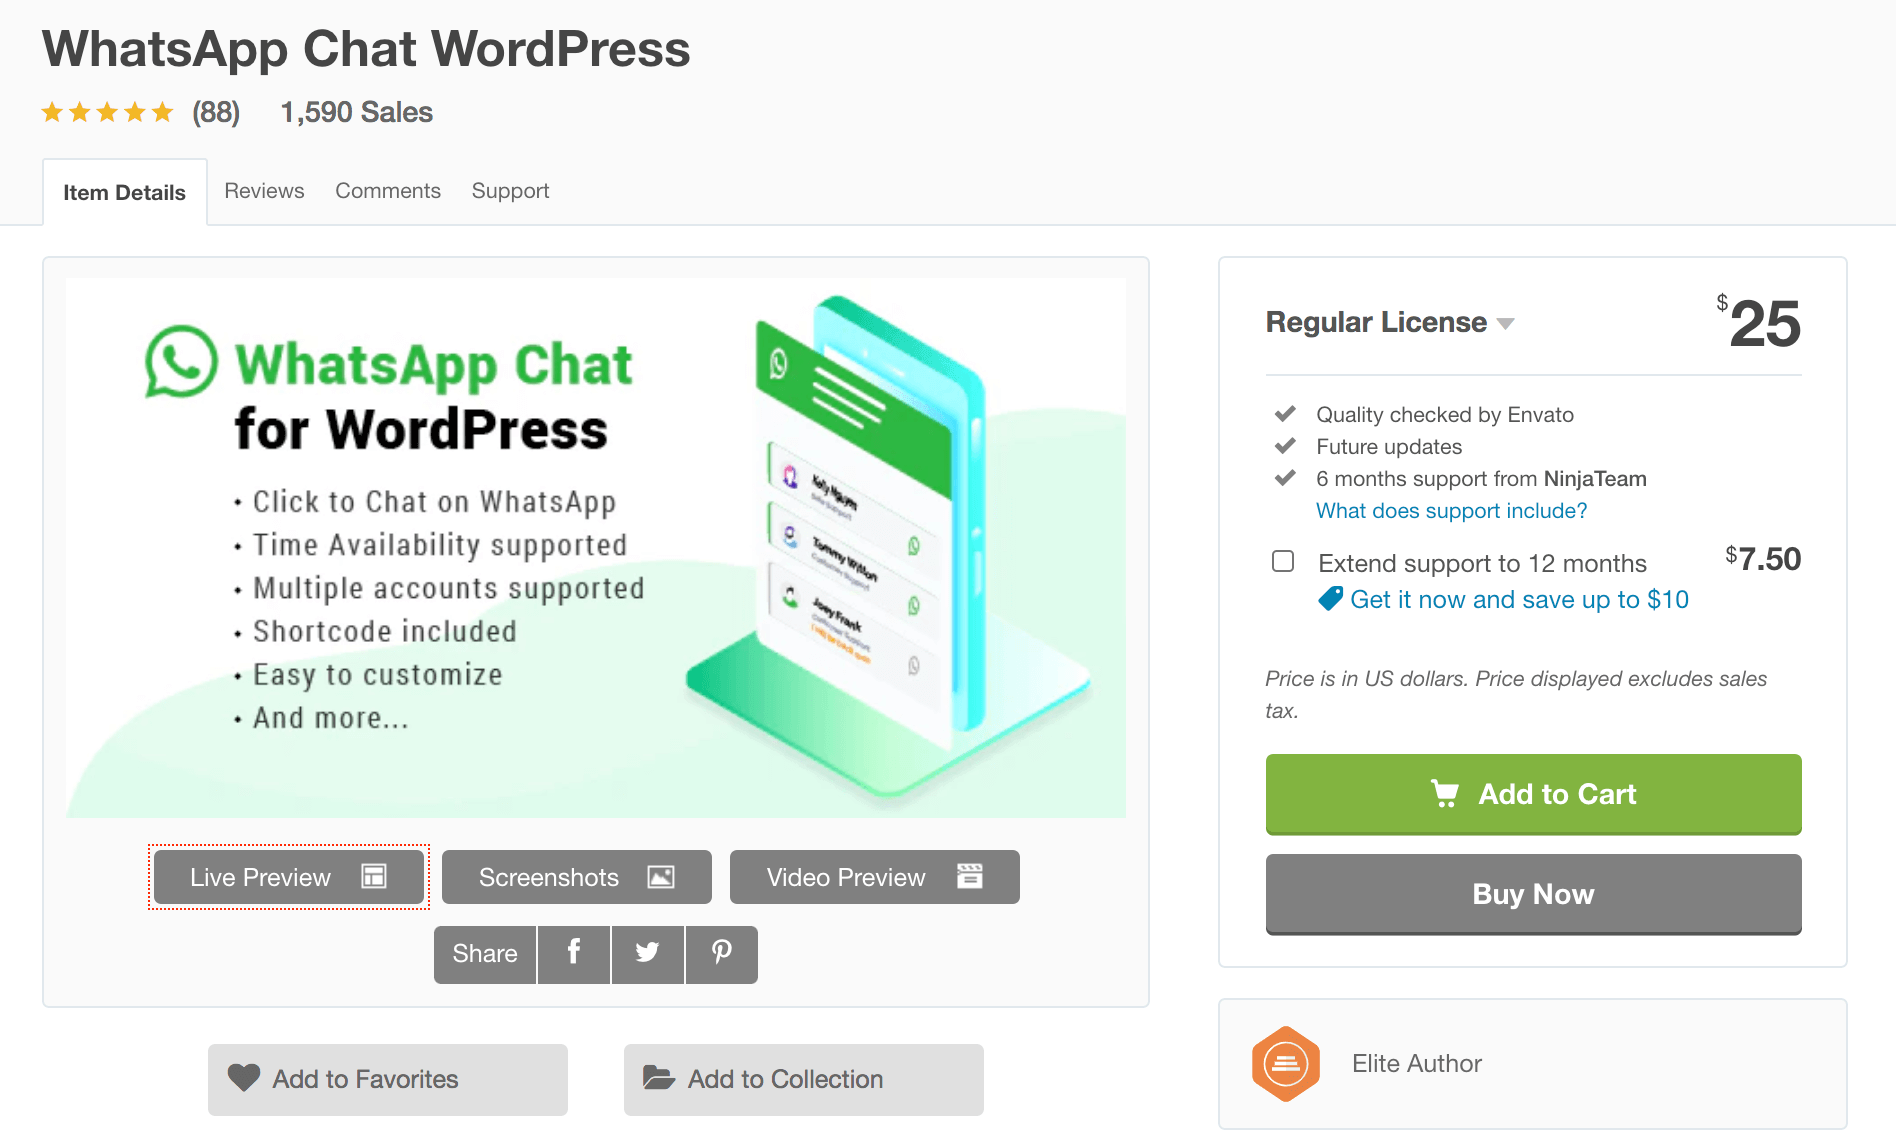 best whatsapp chat wordpress